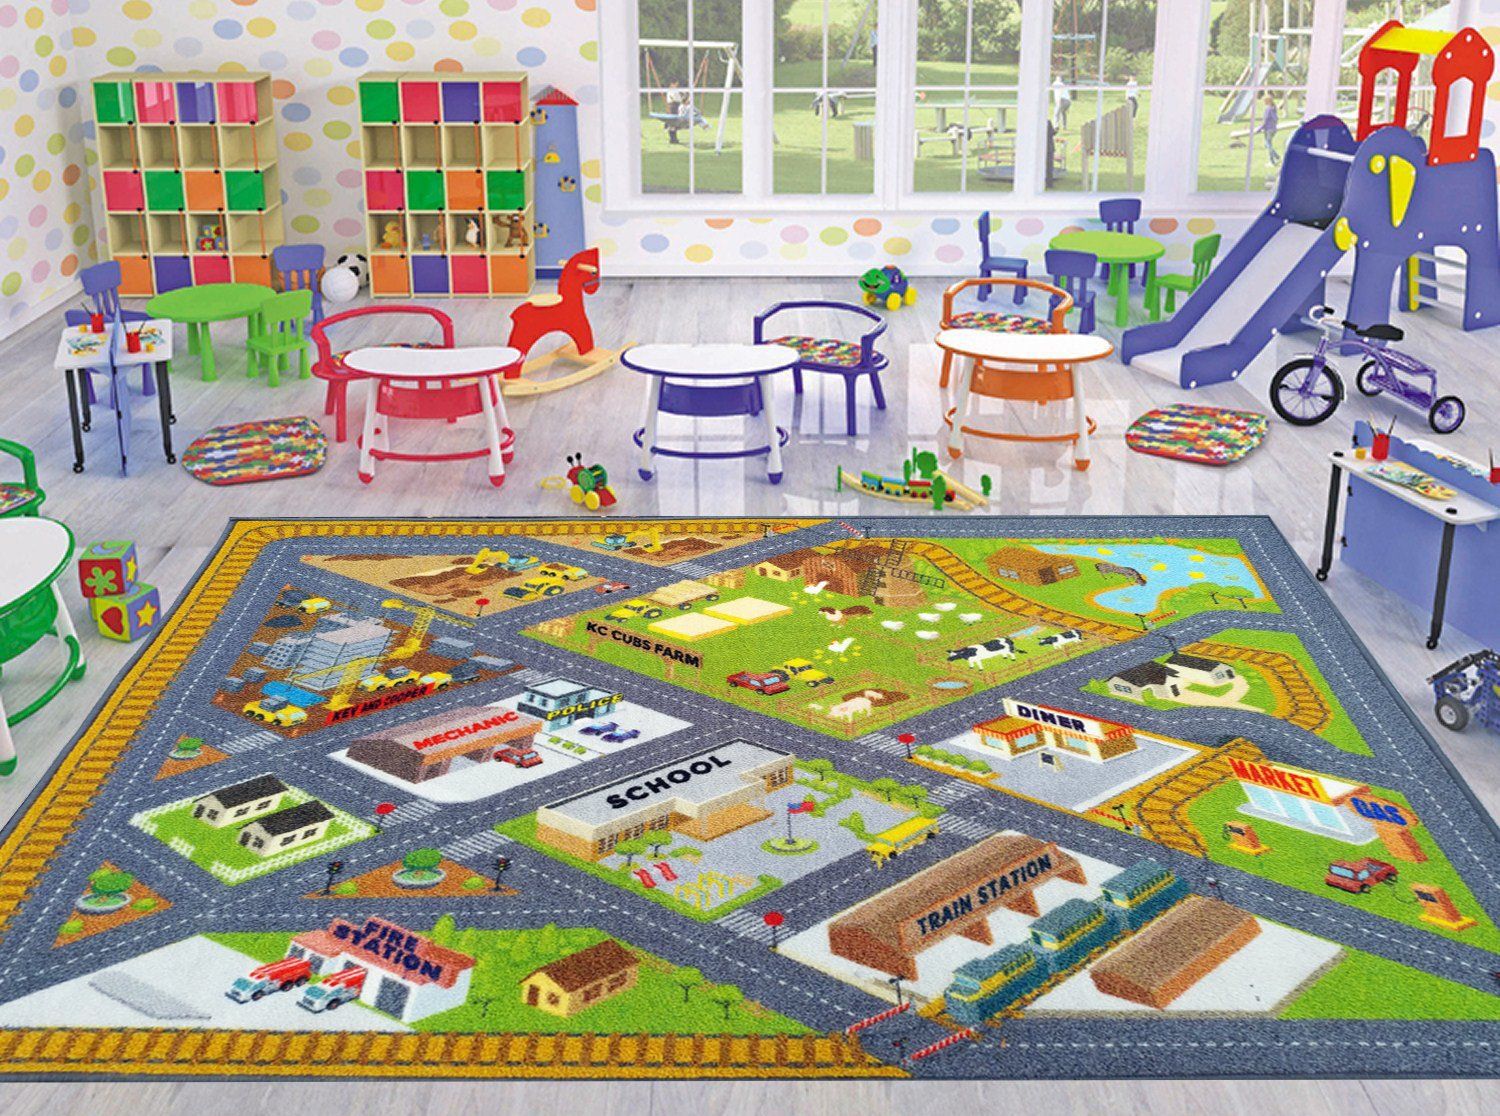 KC Cubs Playtime Collection Country Farm Road Map with Construction Site Educational Learning Area Rug Carpet for Kids and Children Bedroom and Playroom (3' 3'' x 4' 7'') by Kev & Cooper (Image #3)